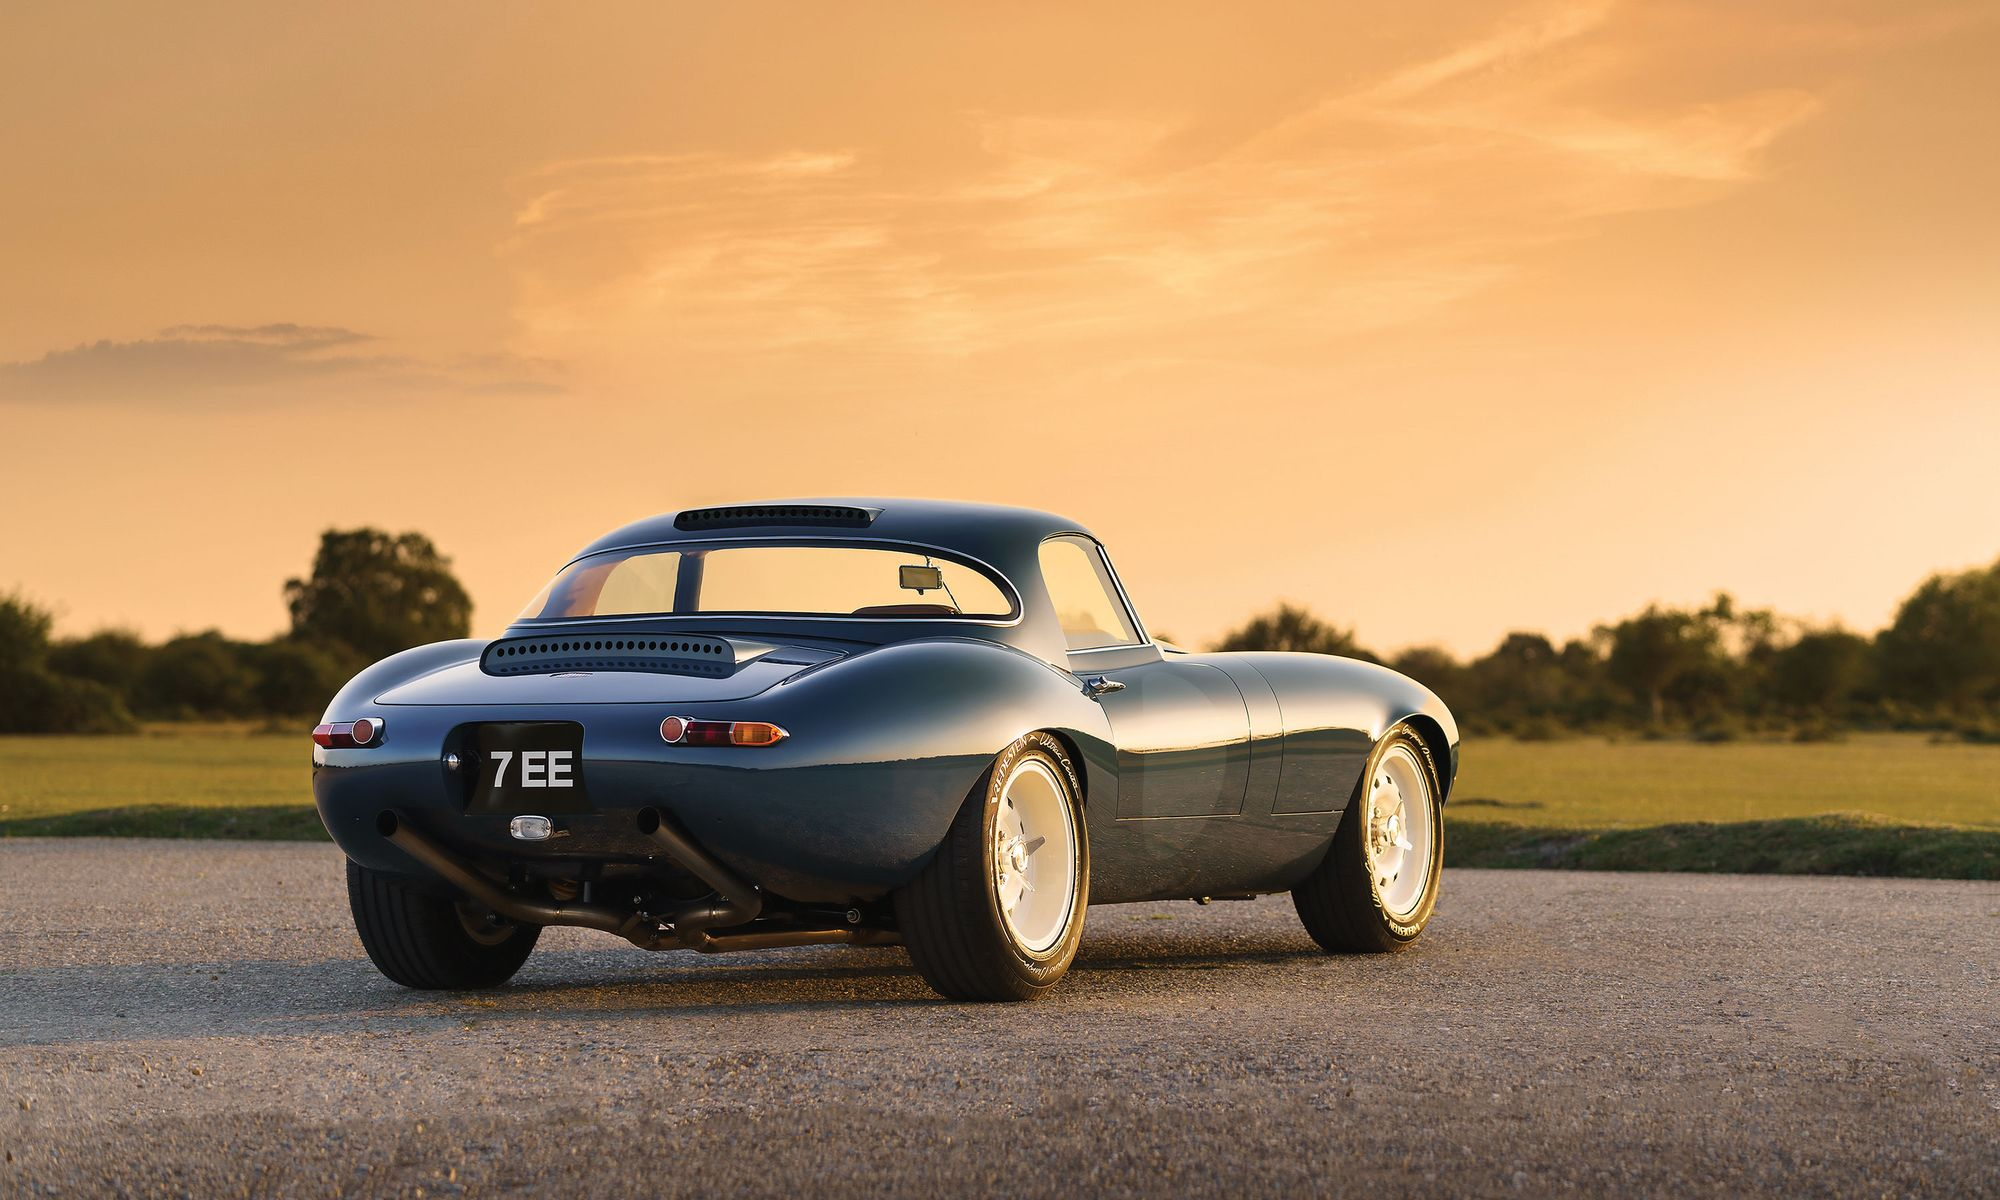 Rear view of the Eagle E-Type Lightweight GT_Hagerty